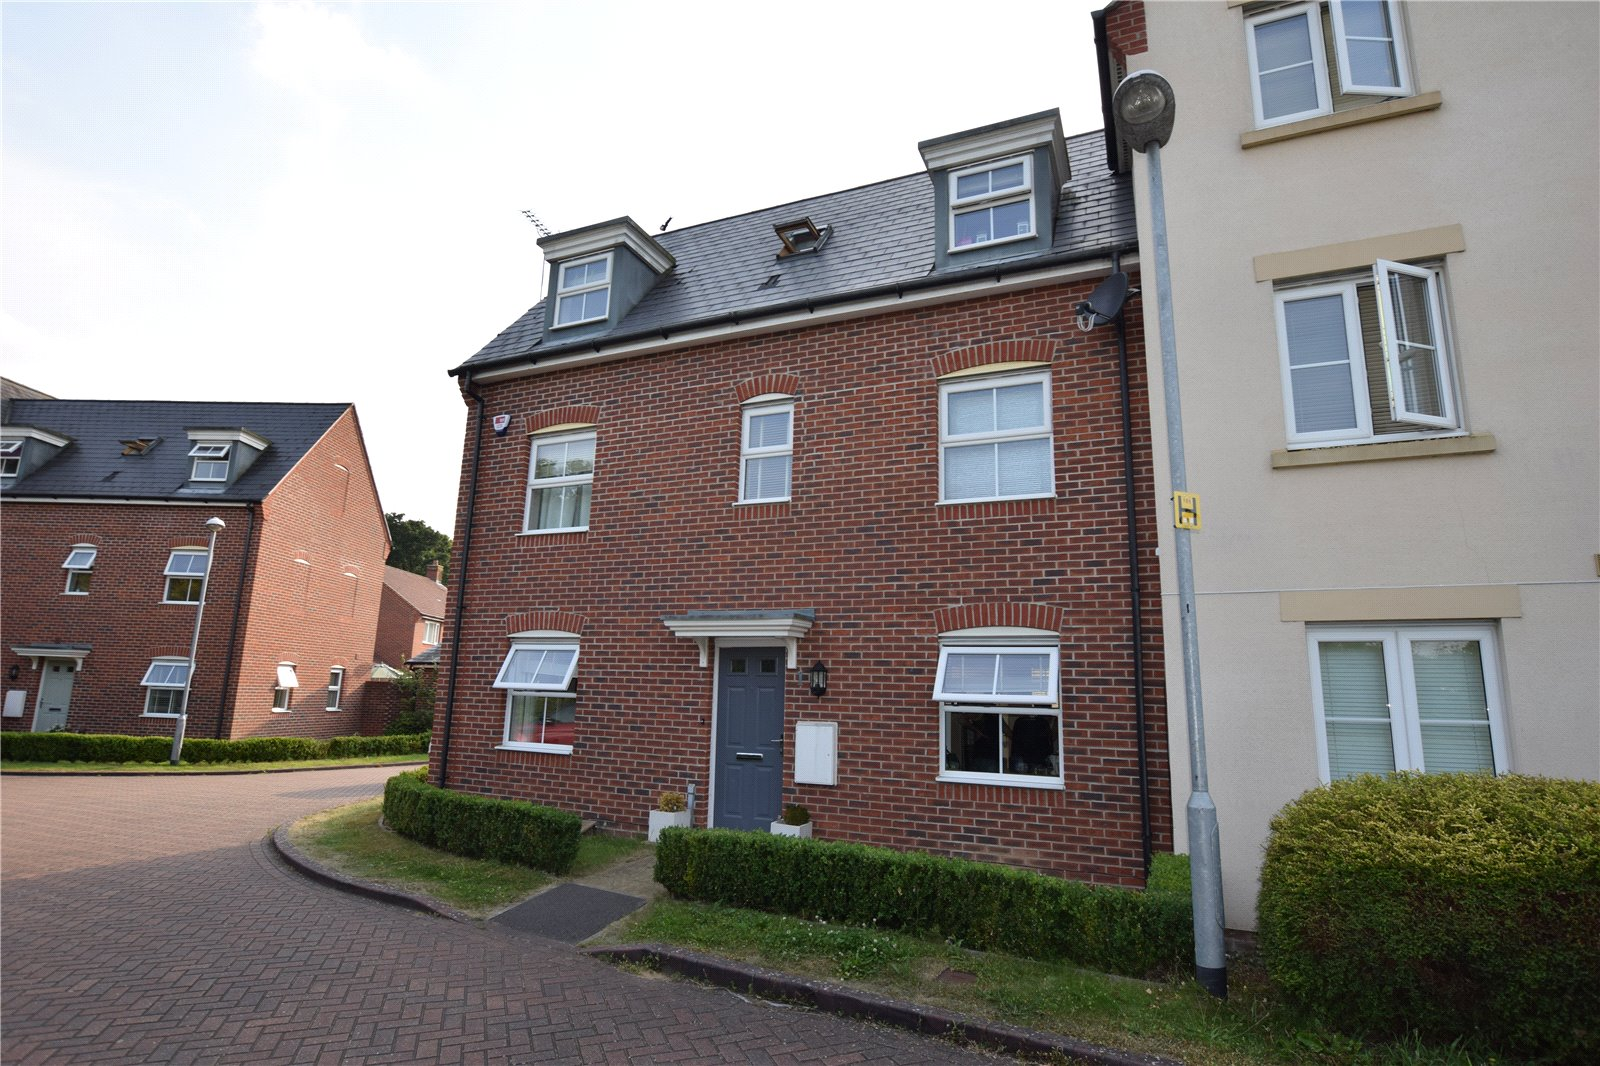 4 Bedrooms Semi Detached House for sale in Quail Corner, Bracknell, Berkshire, RG12